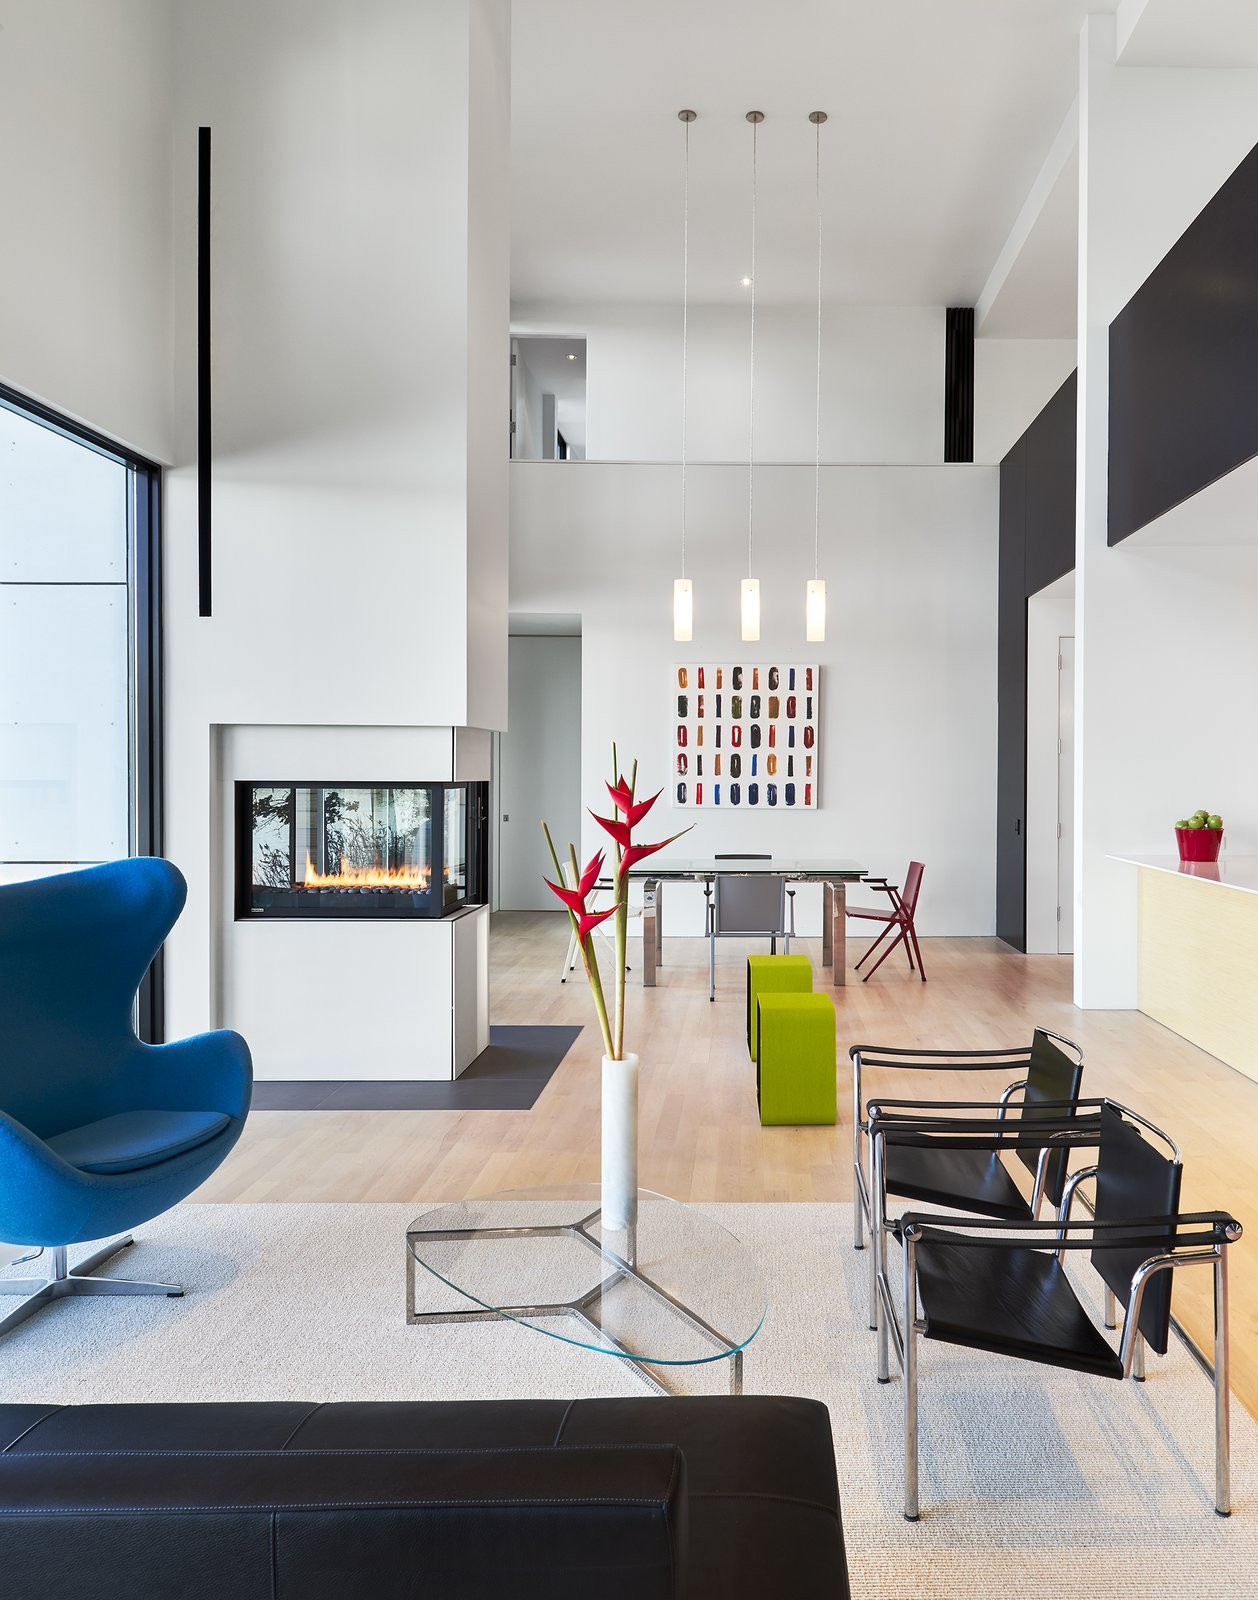 Photo 9 Of 10 In Fritz Hansen Egg Chair From Splashes Of Color Enliven An Abstract Painter S Crisp White Home Dwell